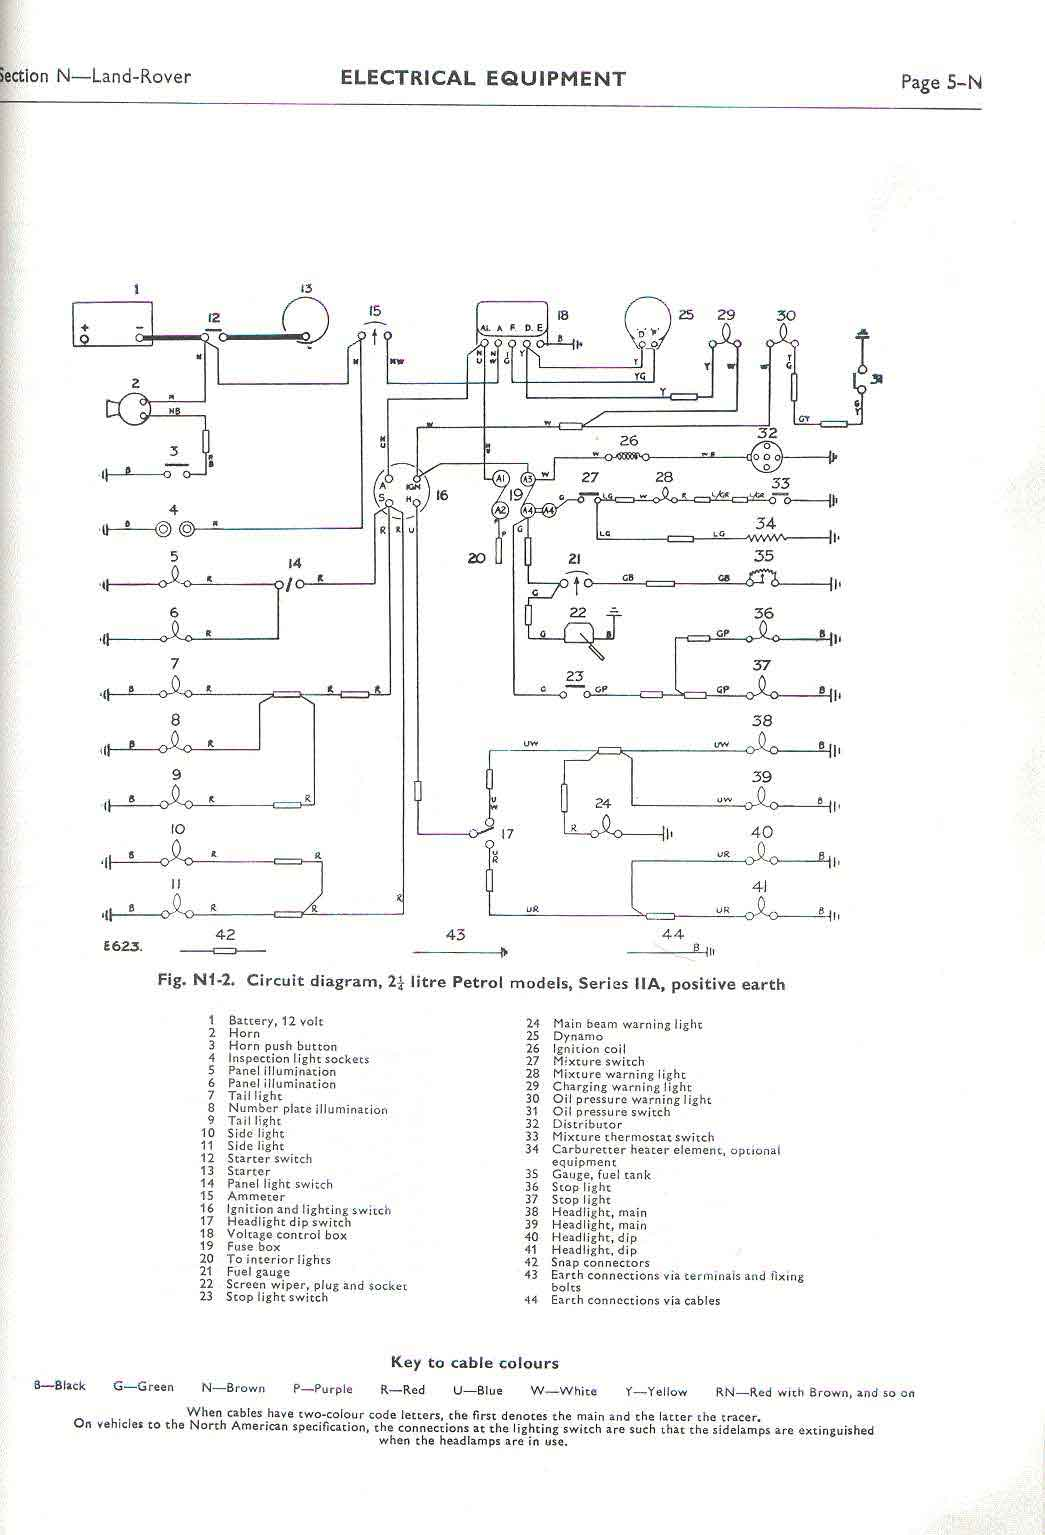 2005 lr3 engine diagram wiring diagram pictures u2022 rh mapavick co uk Land Rover Discovery Alternator Wiring 2004 Land Rover Discovery Engine Diagram